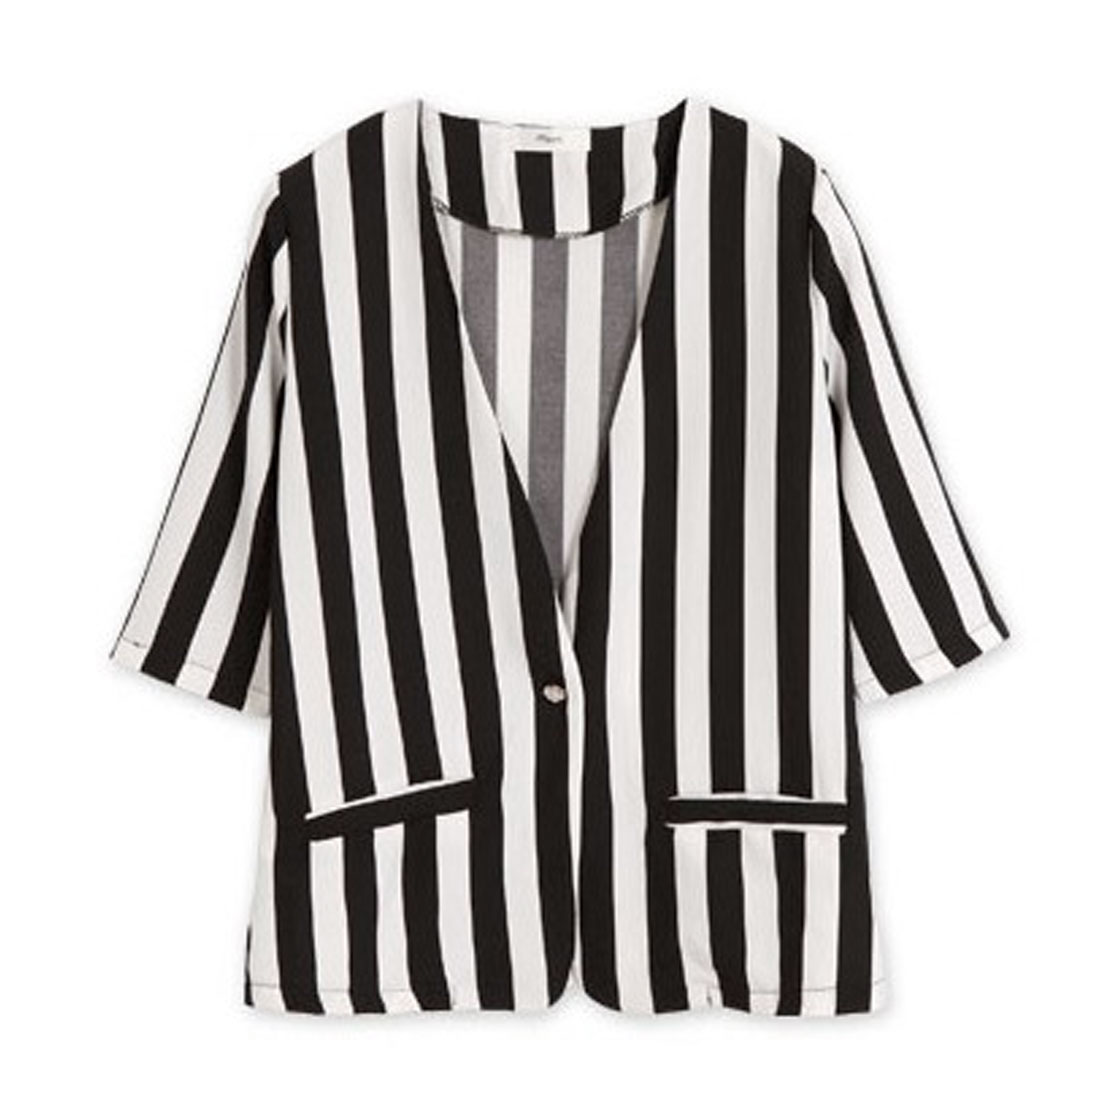 Ladies Chic One-Button Front Vertical Stripes Pattern Black White Casual Coat XS